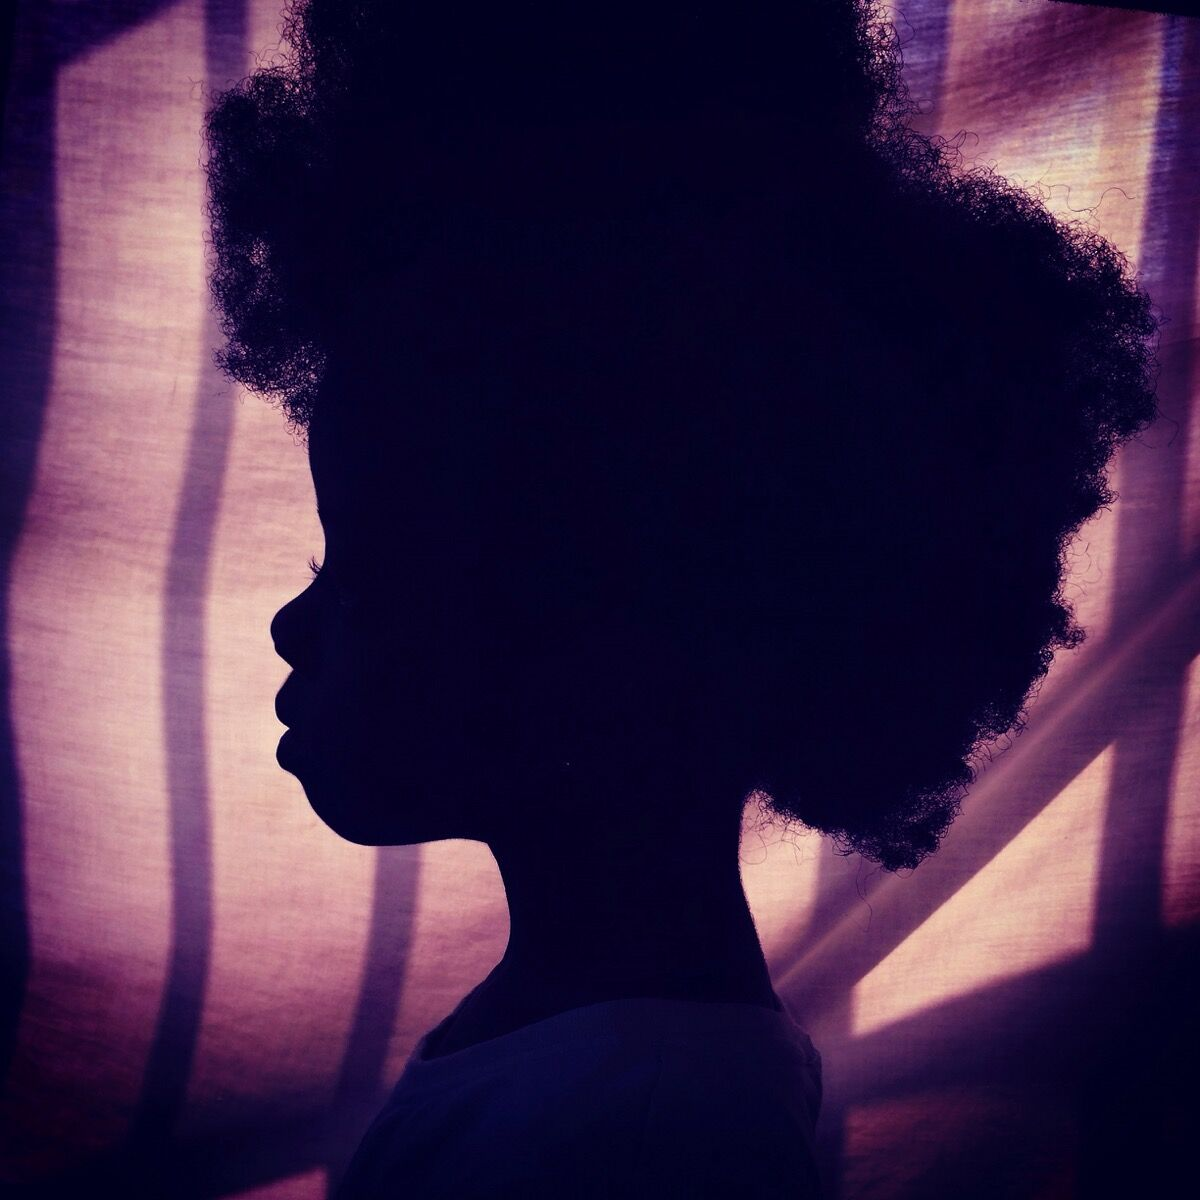 Afro on purple. Silhouette of my daughter. Accra, Ghana. Photo by @africashowboy.